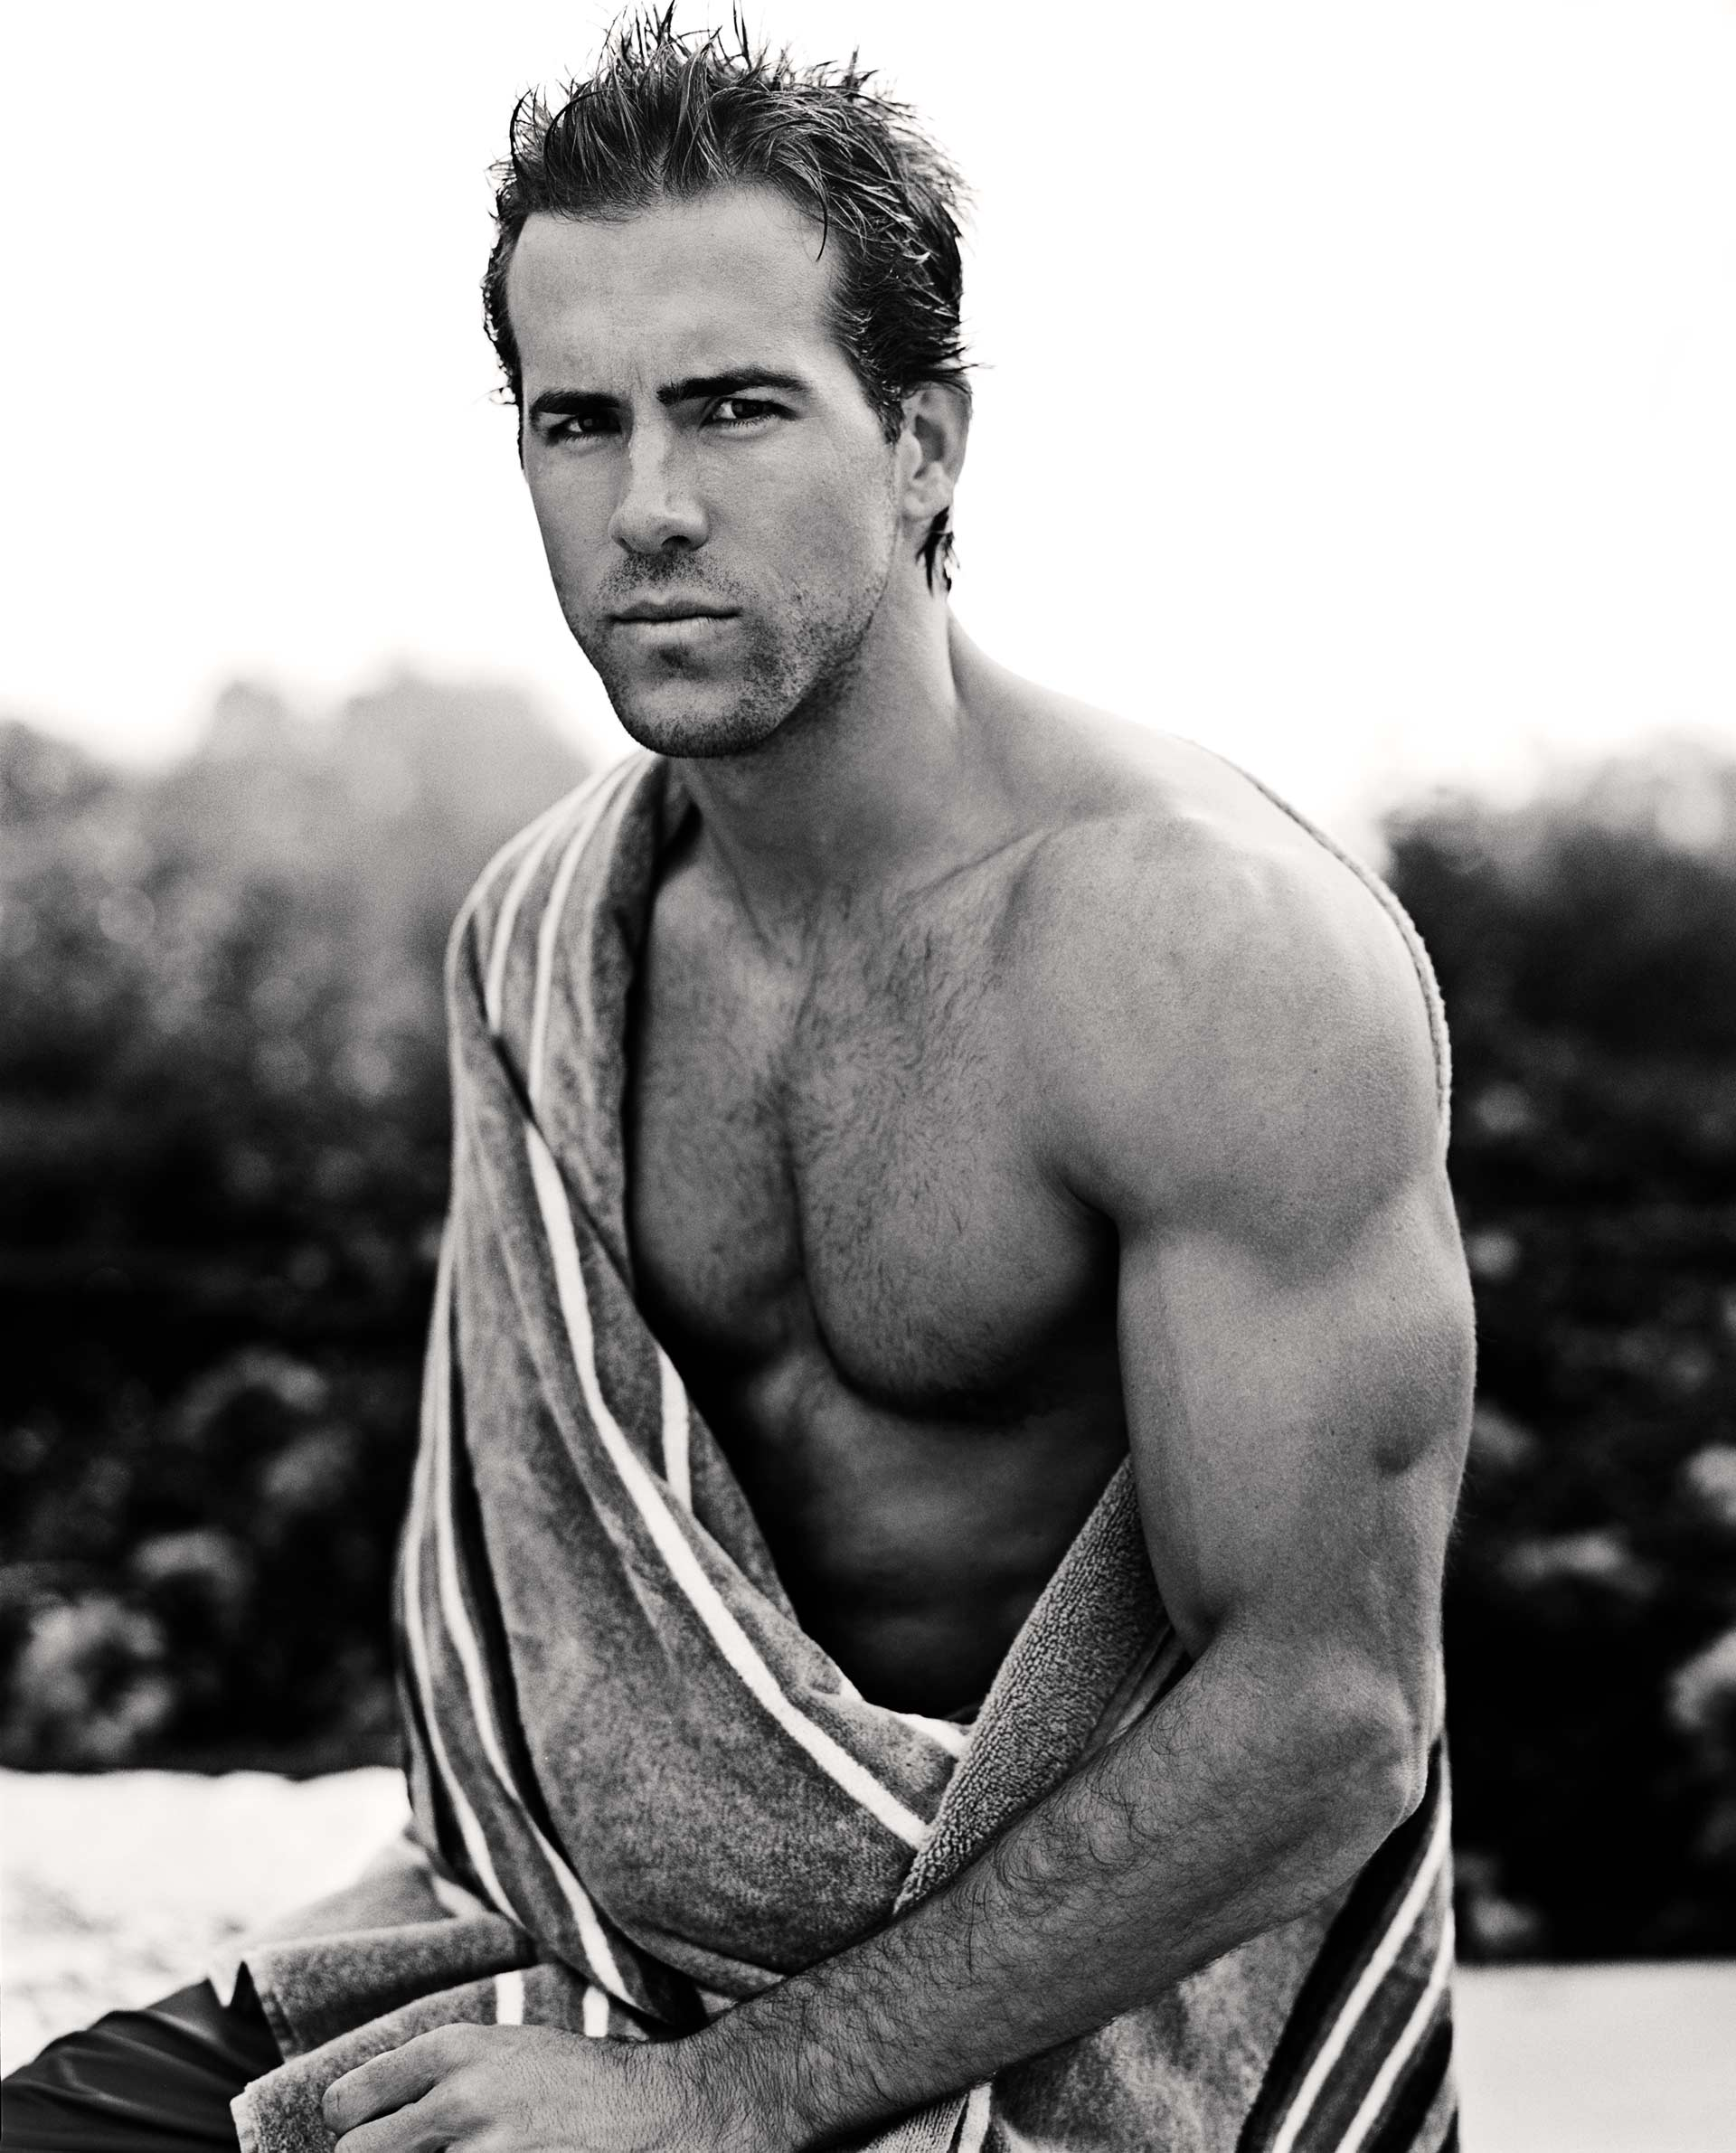 20051028_MENS_HEALTH_RYAN_REYNOLDS_RETOUCH_FLAT_0006